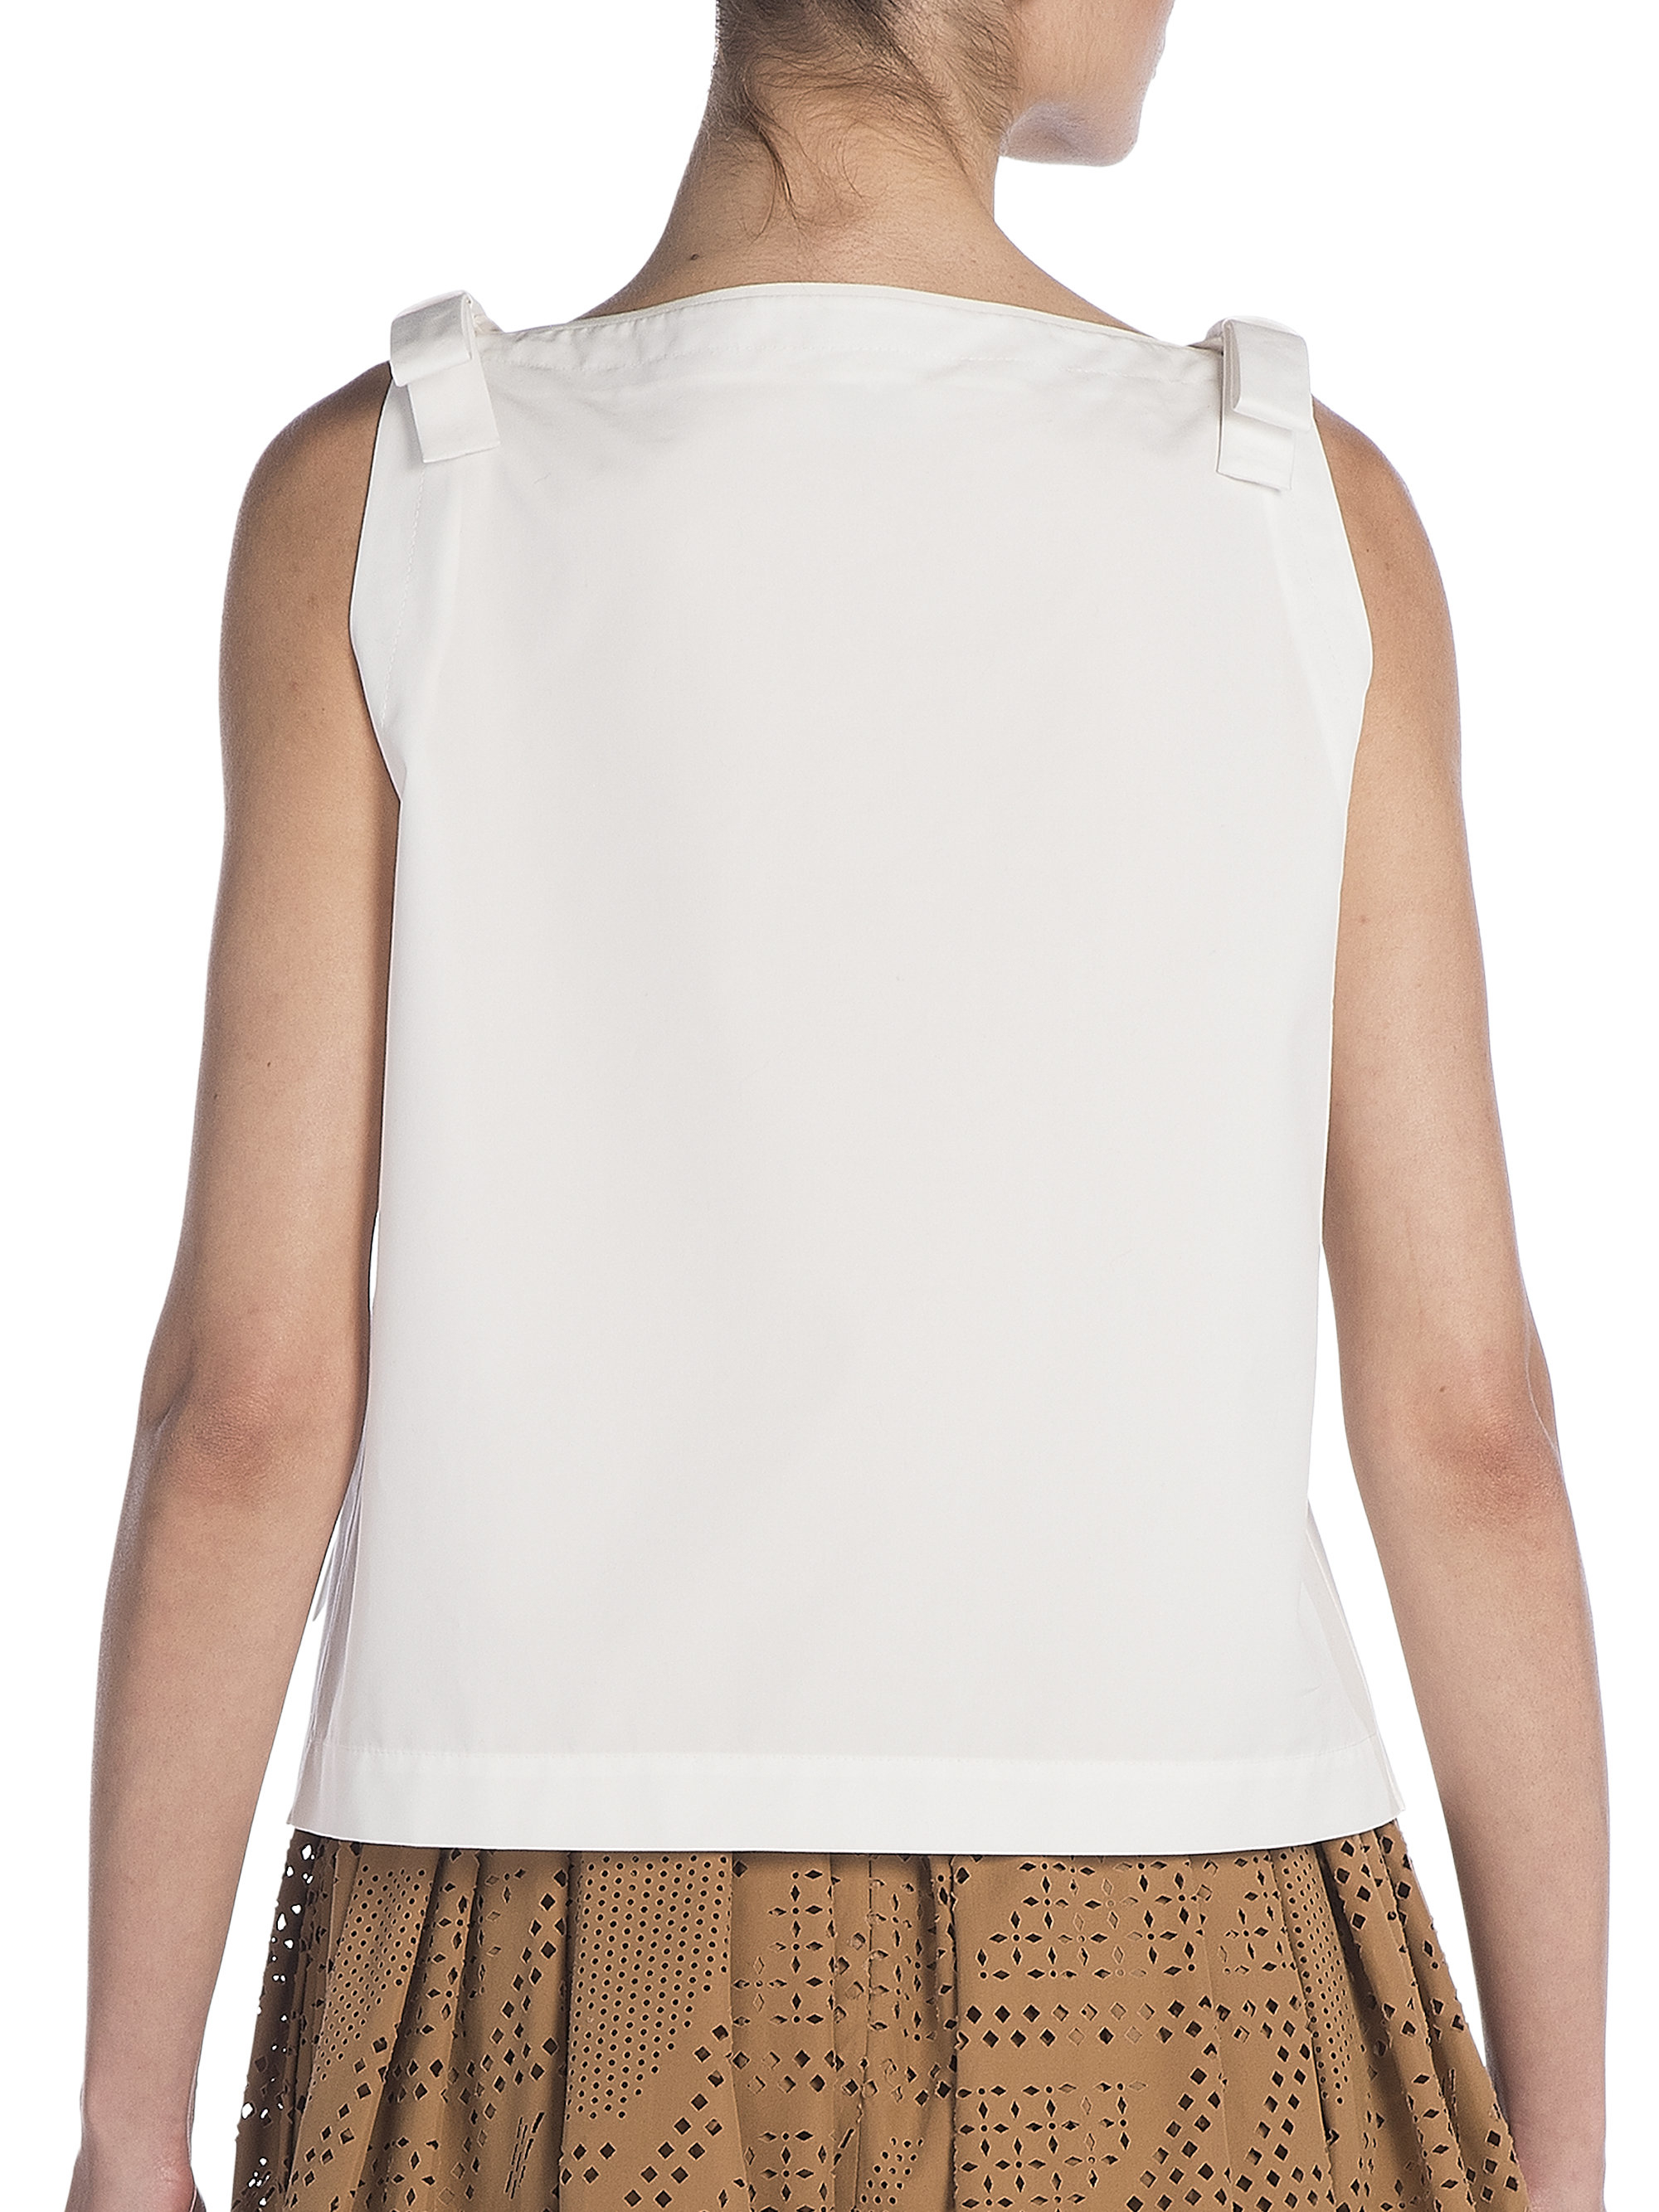 Discounts Cheap Price Bow-embellished Cotton-poplin Top - White Fendi Outlet Newest Low Price Sale Online sc2Bfjxh